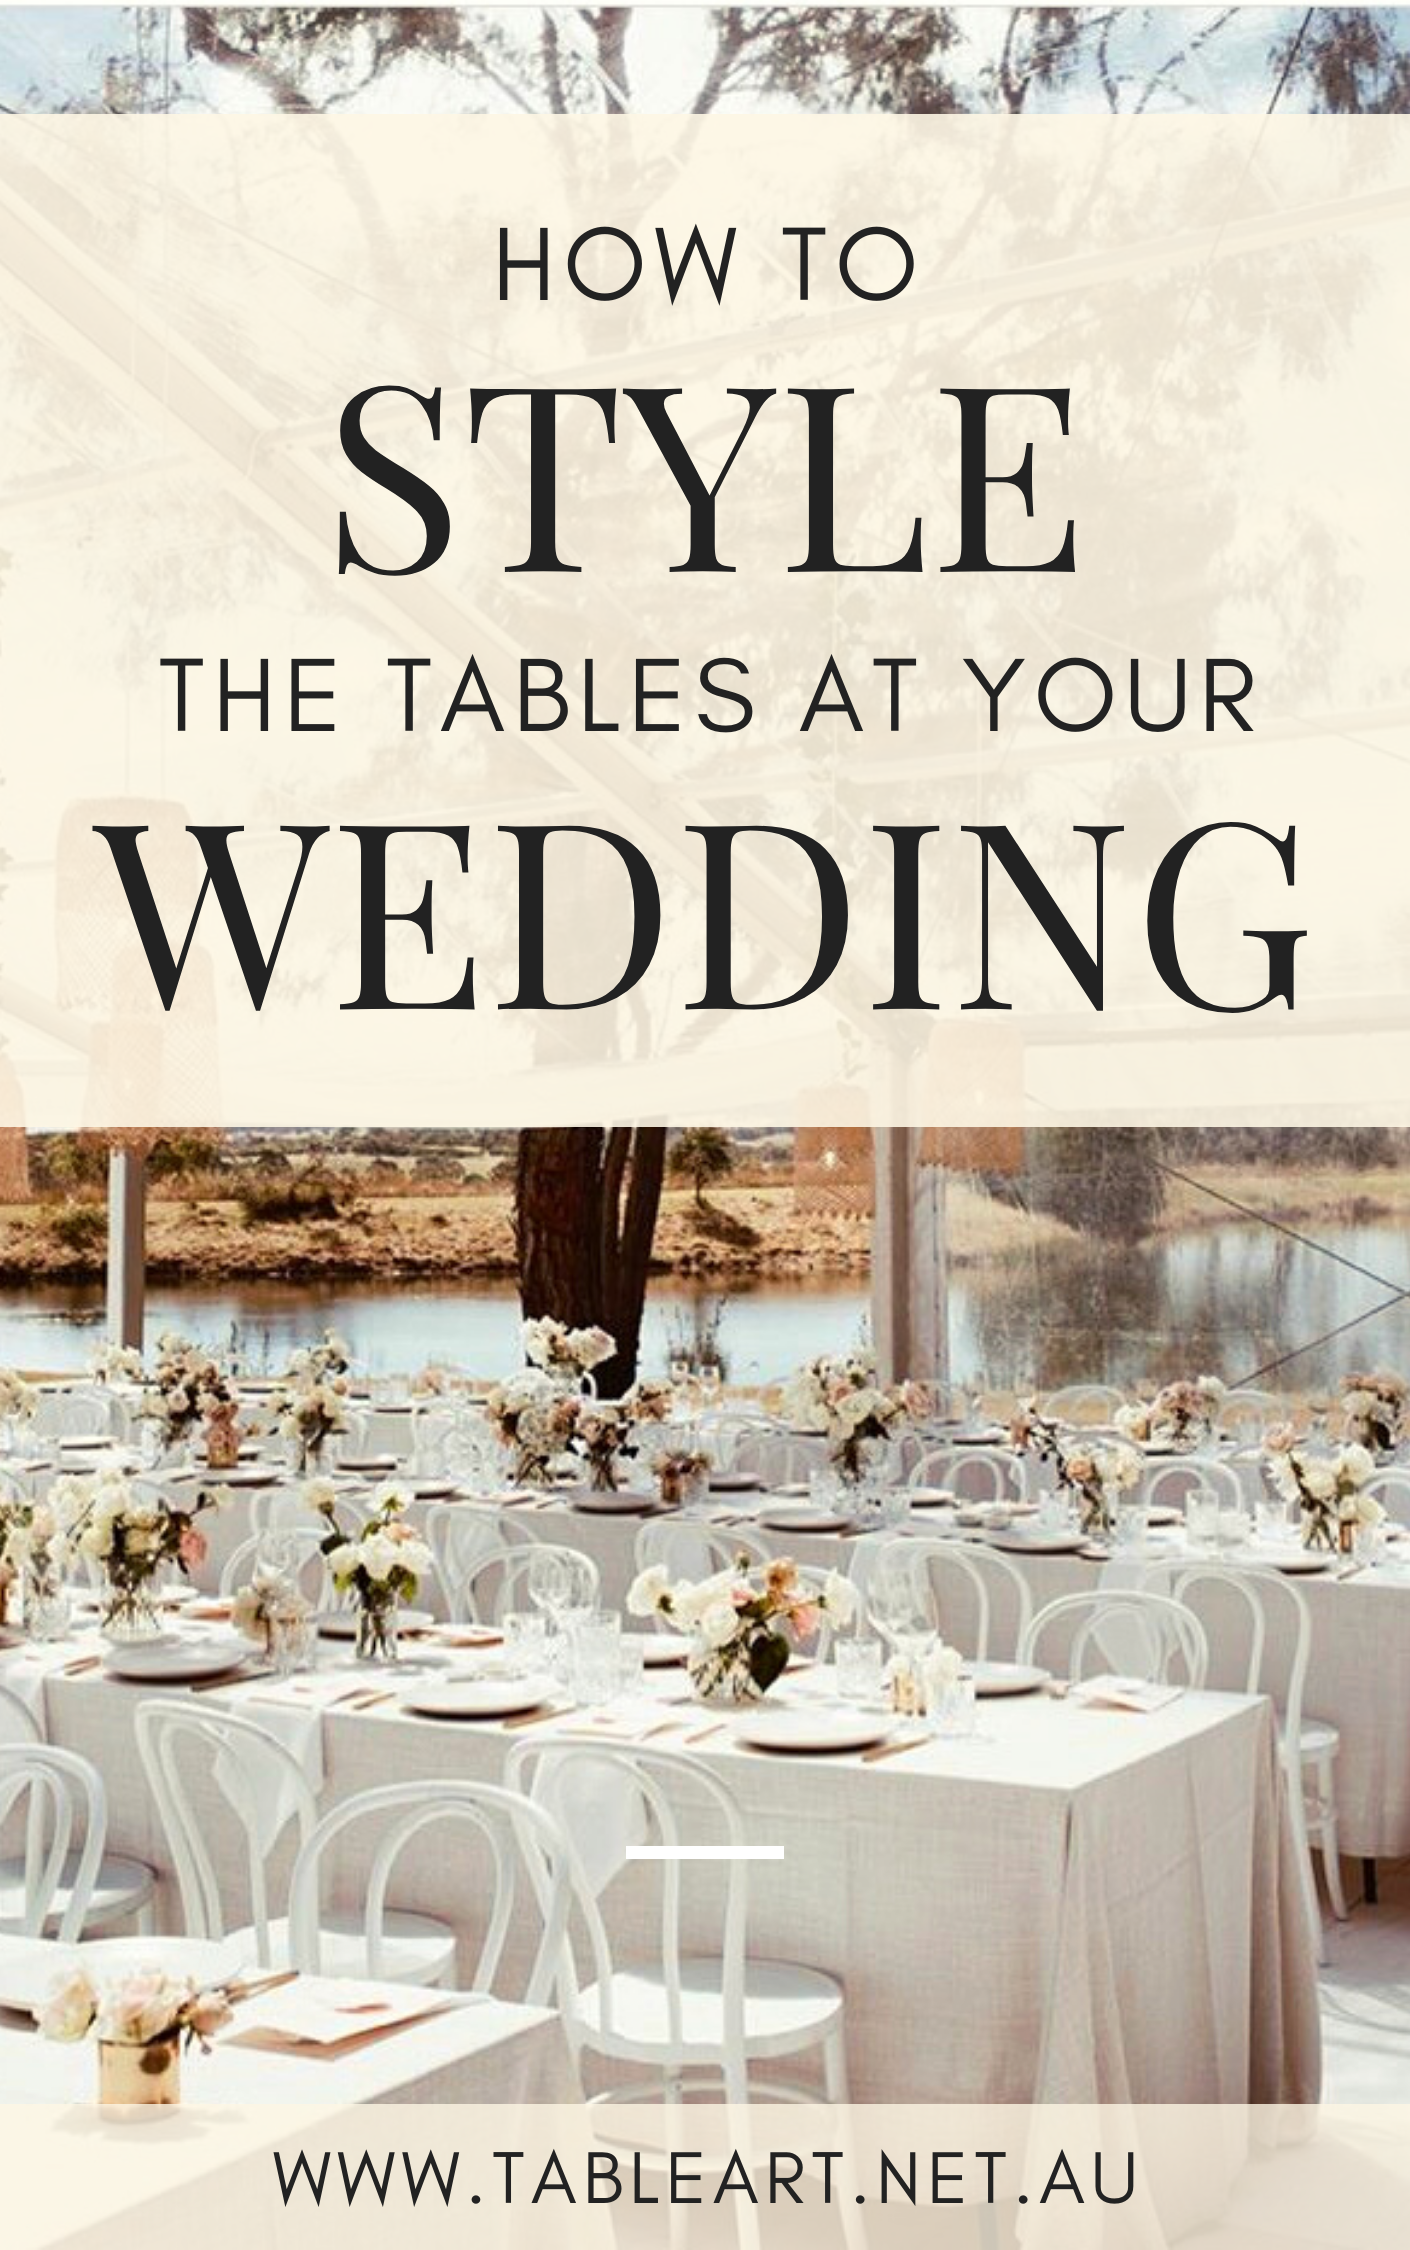 How To Style The Tables At Your Wedding In 2020 Wedding Table Linens Wedding Tablescapes Round Wedding Table Settings